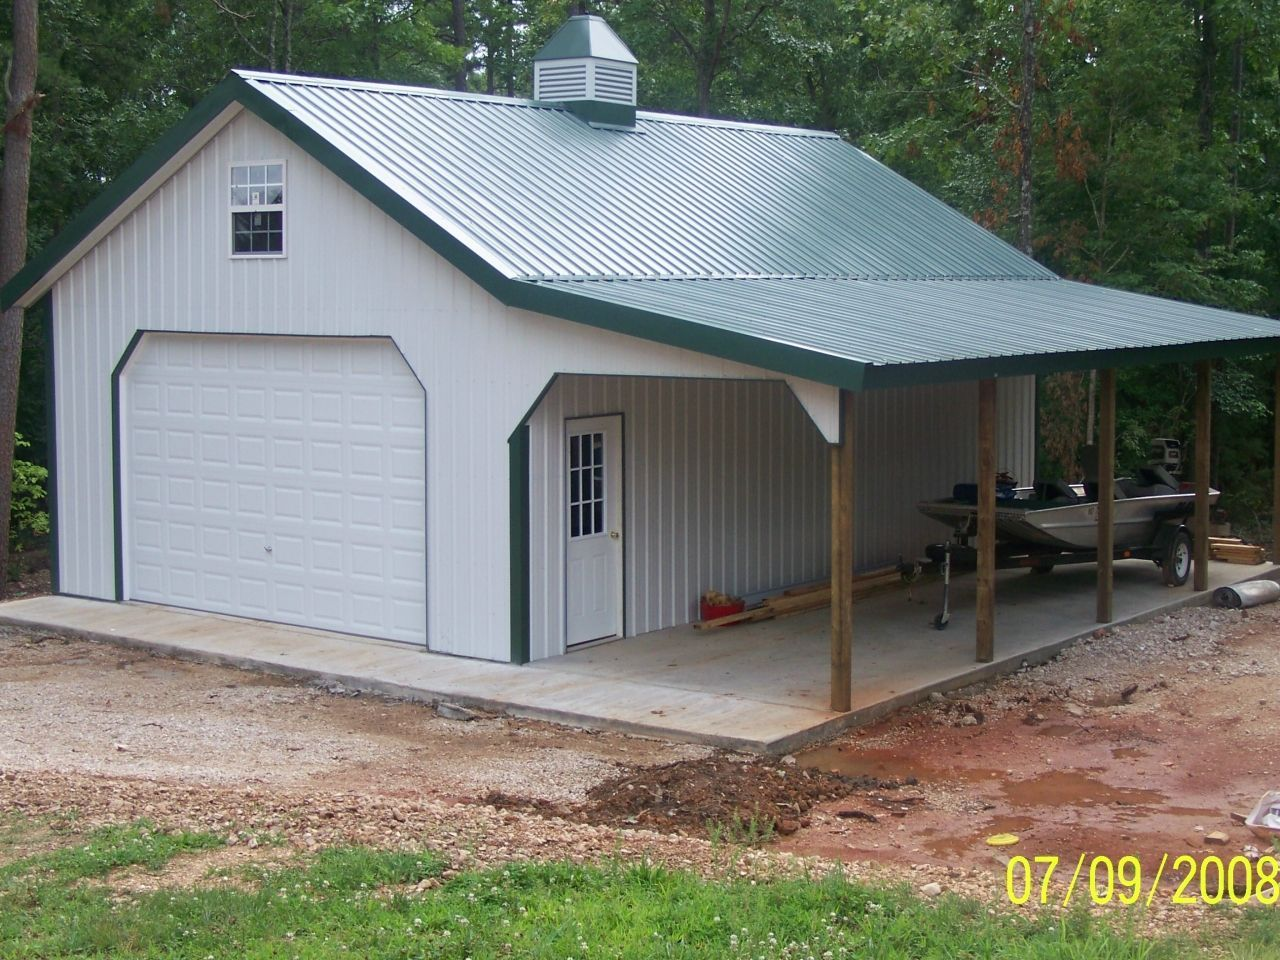 Metal Pole Barn Building Plans Wholesale Pole Barn Kits ... #polebarngarage Metal Pole Barn Building Plans Wholesale Pole Barn Kits ... #polebarndesigns Metal Pole Barn Building Plans Wholesale Pole Barn Kits ... #polebarngarage Metal Pole Barn Building Plans Wholesale Pole Barn Kits ... #polebarngarage